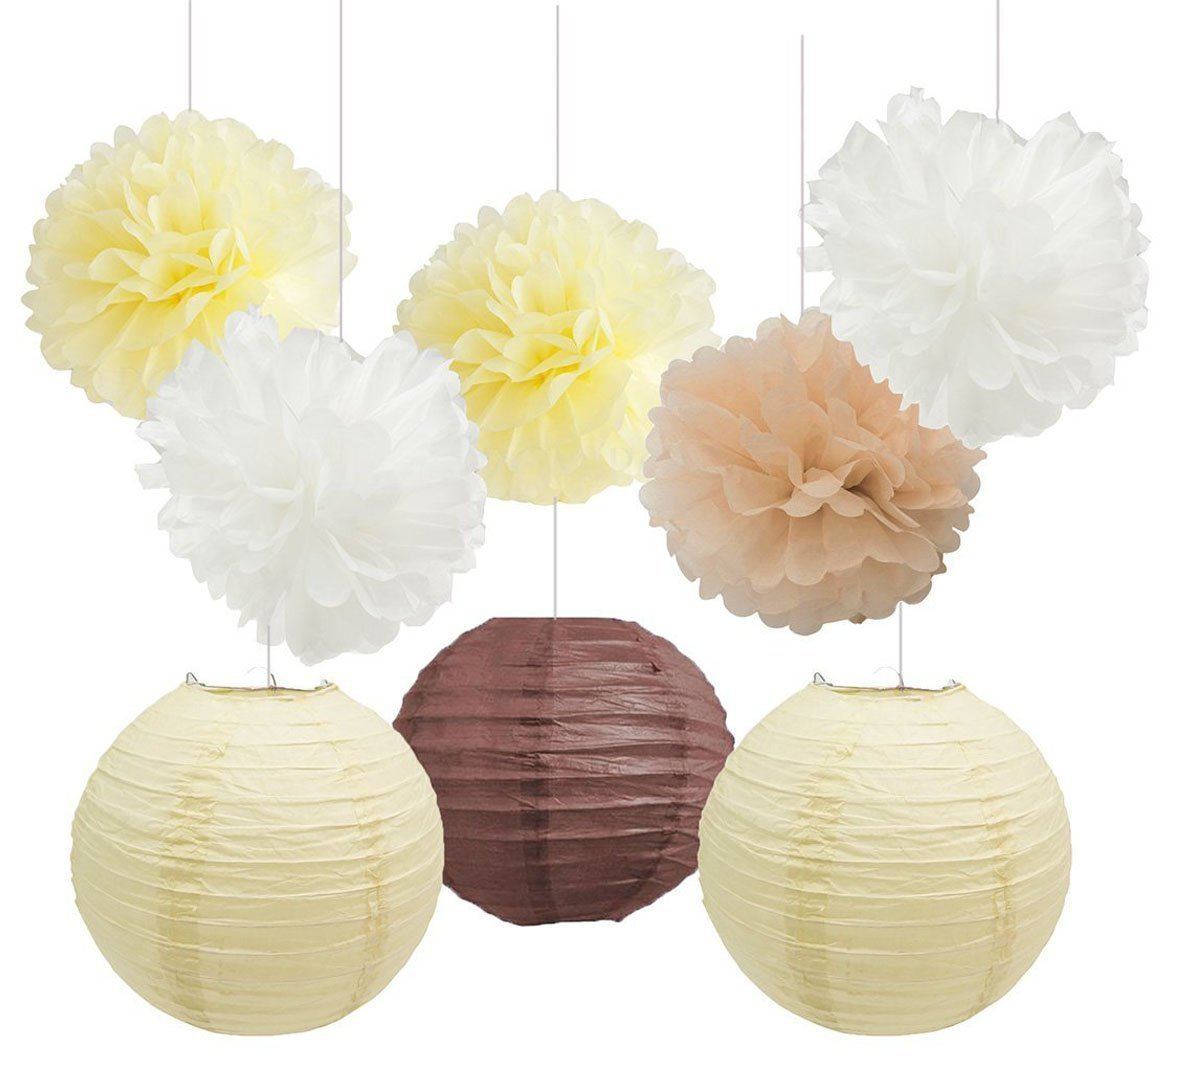 Furuix Brown Cream White Tissue Paper Pom Pom Paper Lanterns for Rustic Wedding Decoration Party Decoration Kit for Baby Shower Room Decoration Paper Craft   B01NACLYM2